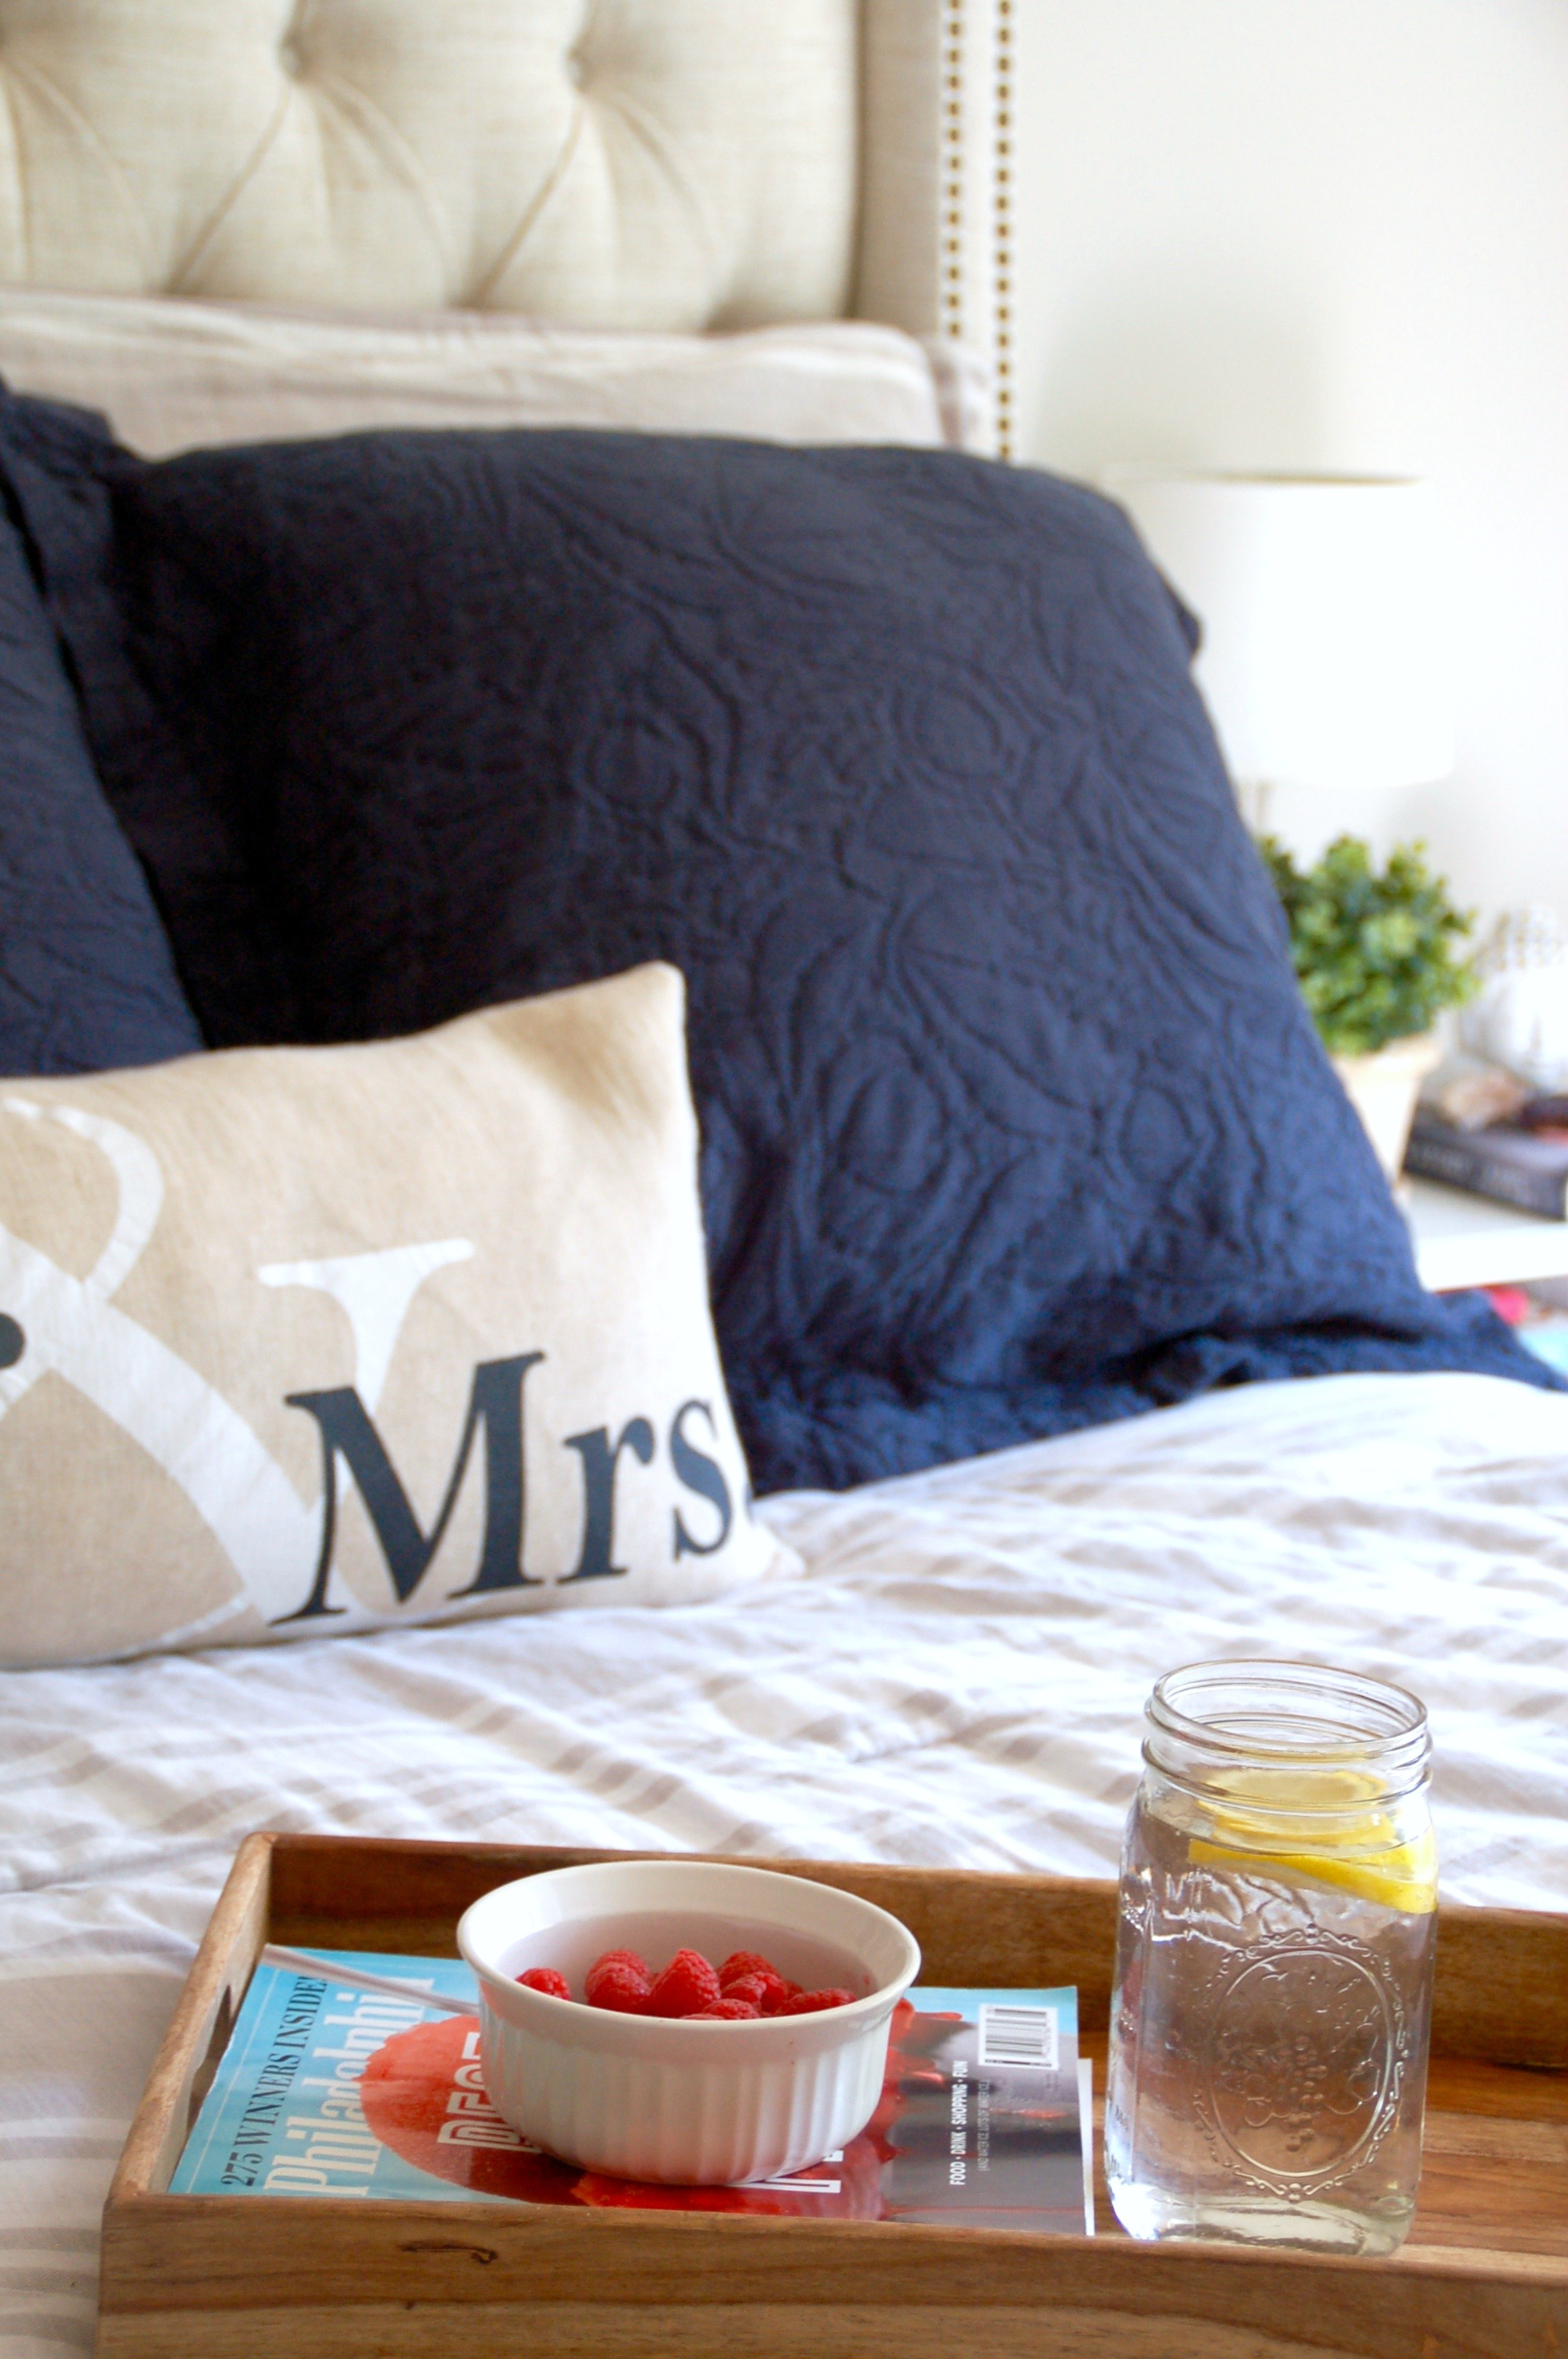 5 tips for a bedroom refresh